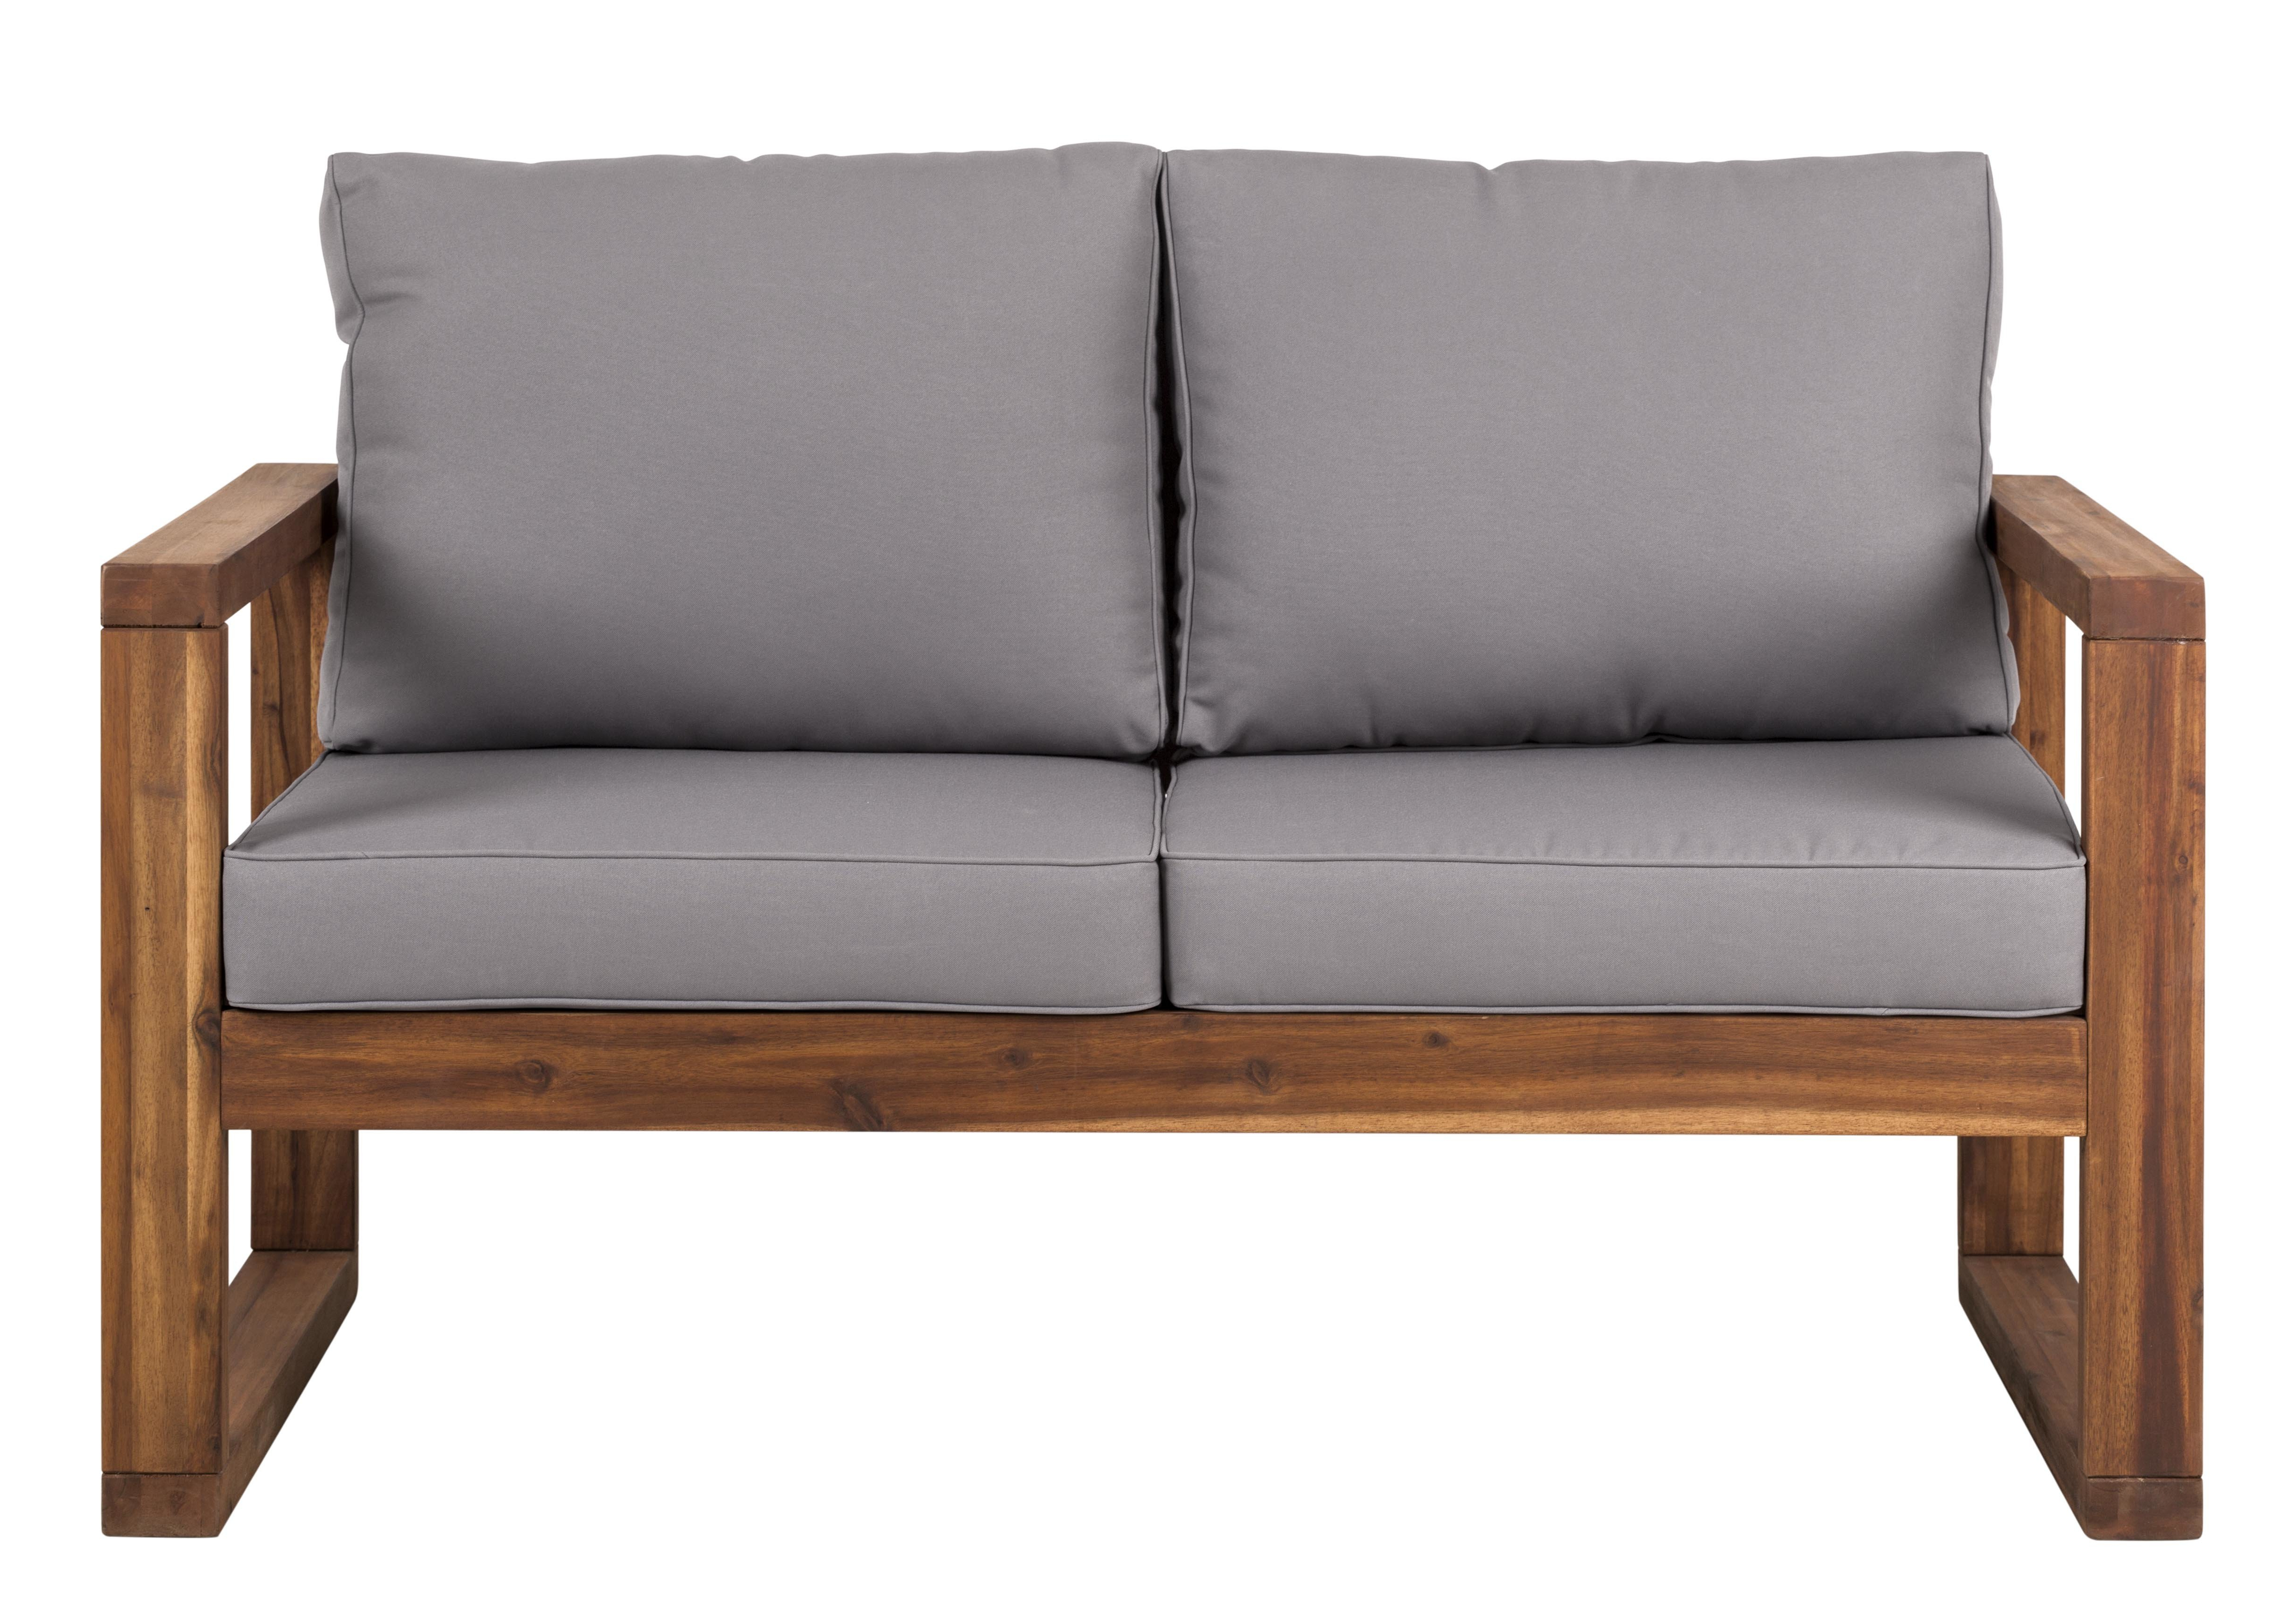 Montford Teak Loveseats With Cushions Within Newest Lyall Loveseat With Cushion (View 13 of 20)